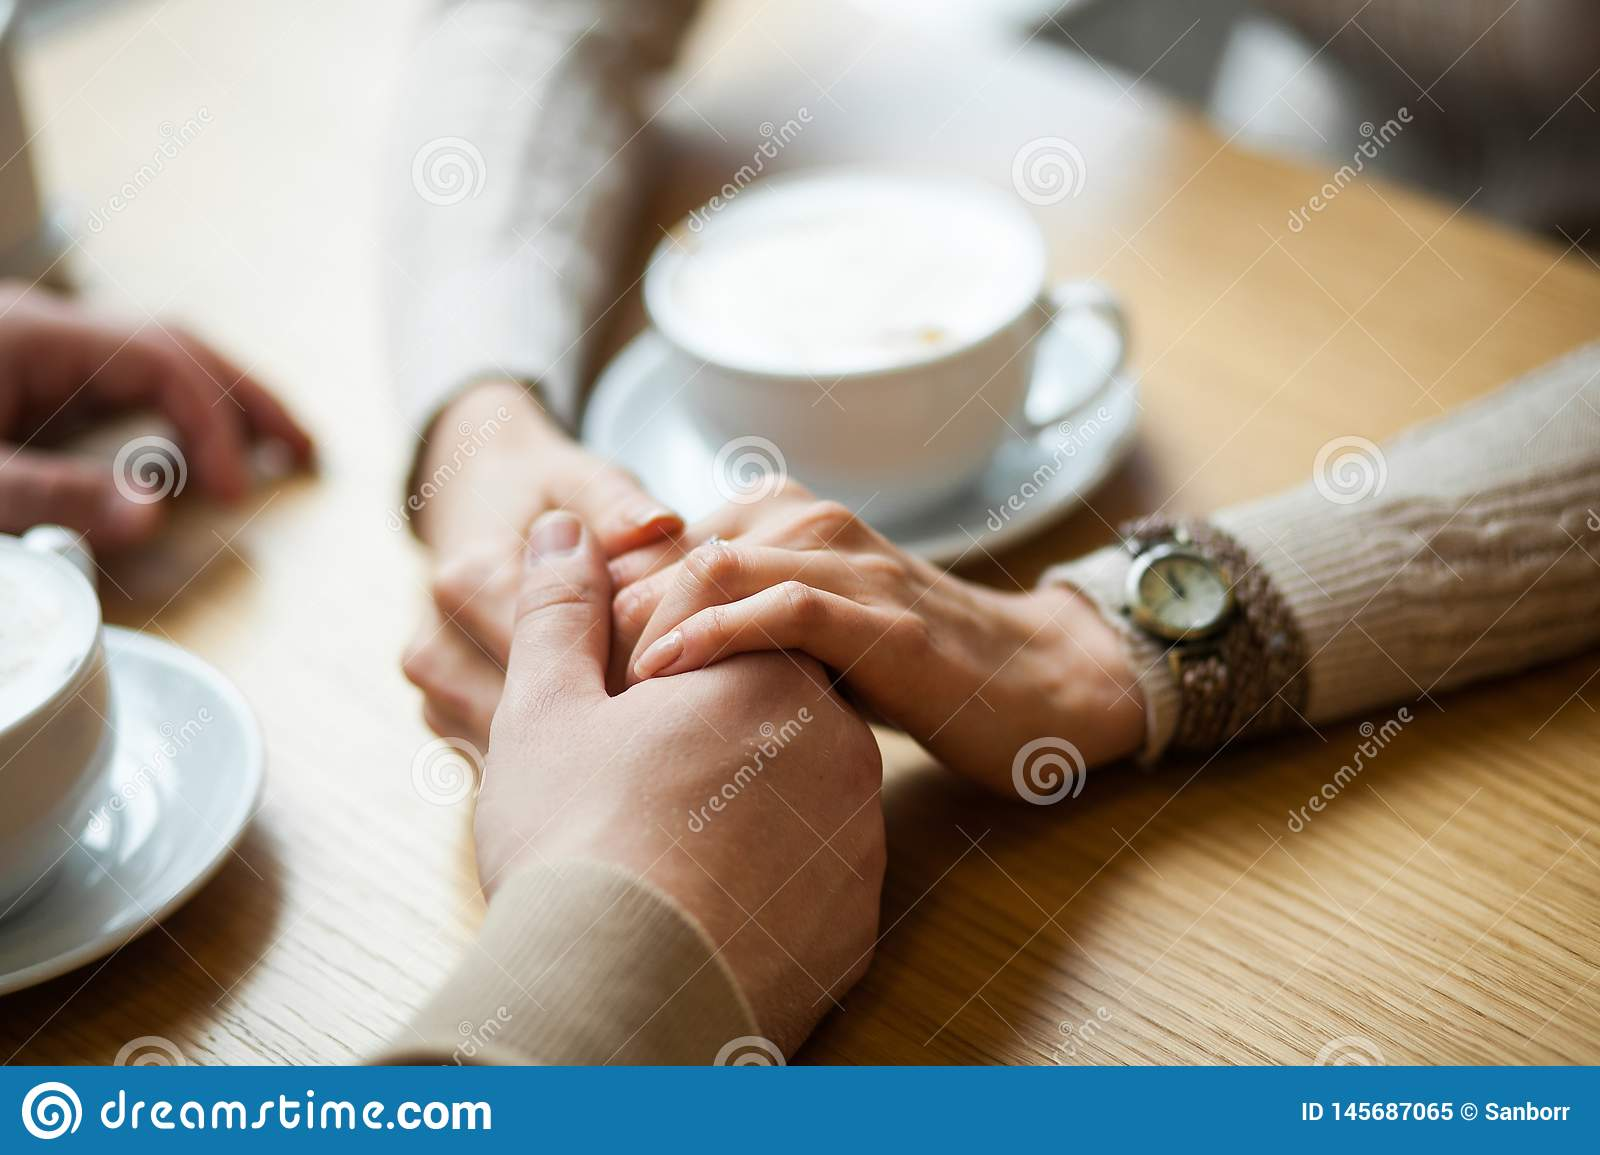 Couple hold hands drinking coffee in cafe, close up of lovers arms on background of wooden table. Breakfast or lunch in restaurant